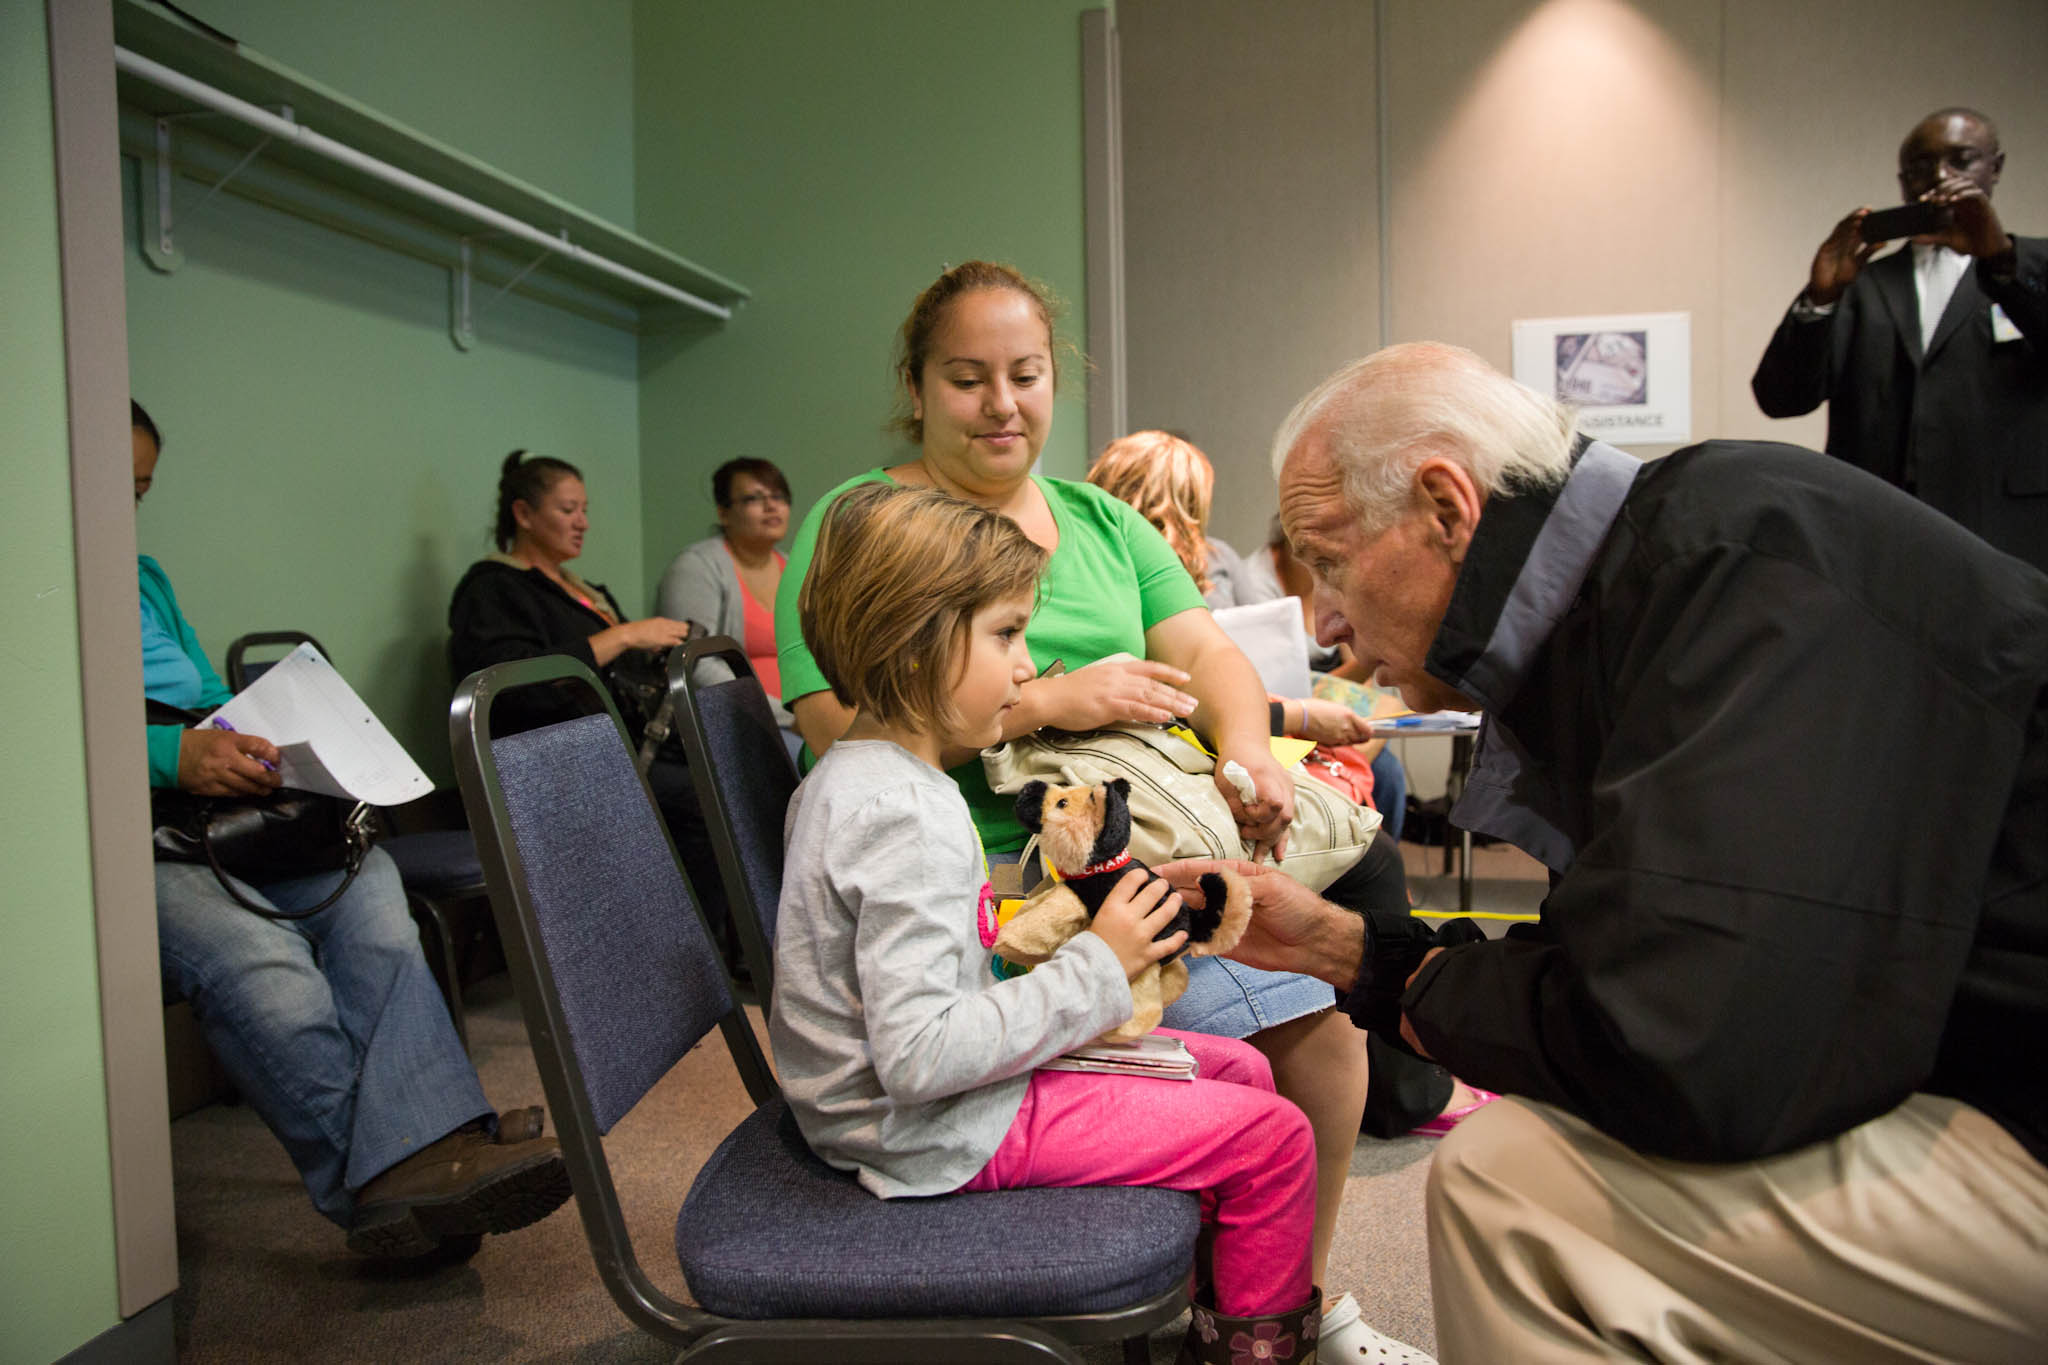 Vice President Joe Biden give Champ the stuffed animal to Alahy Cerrillo, 5